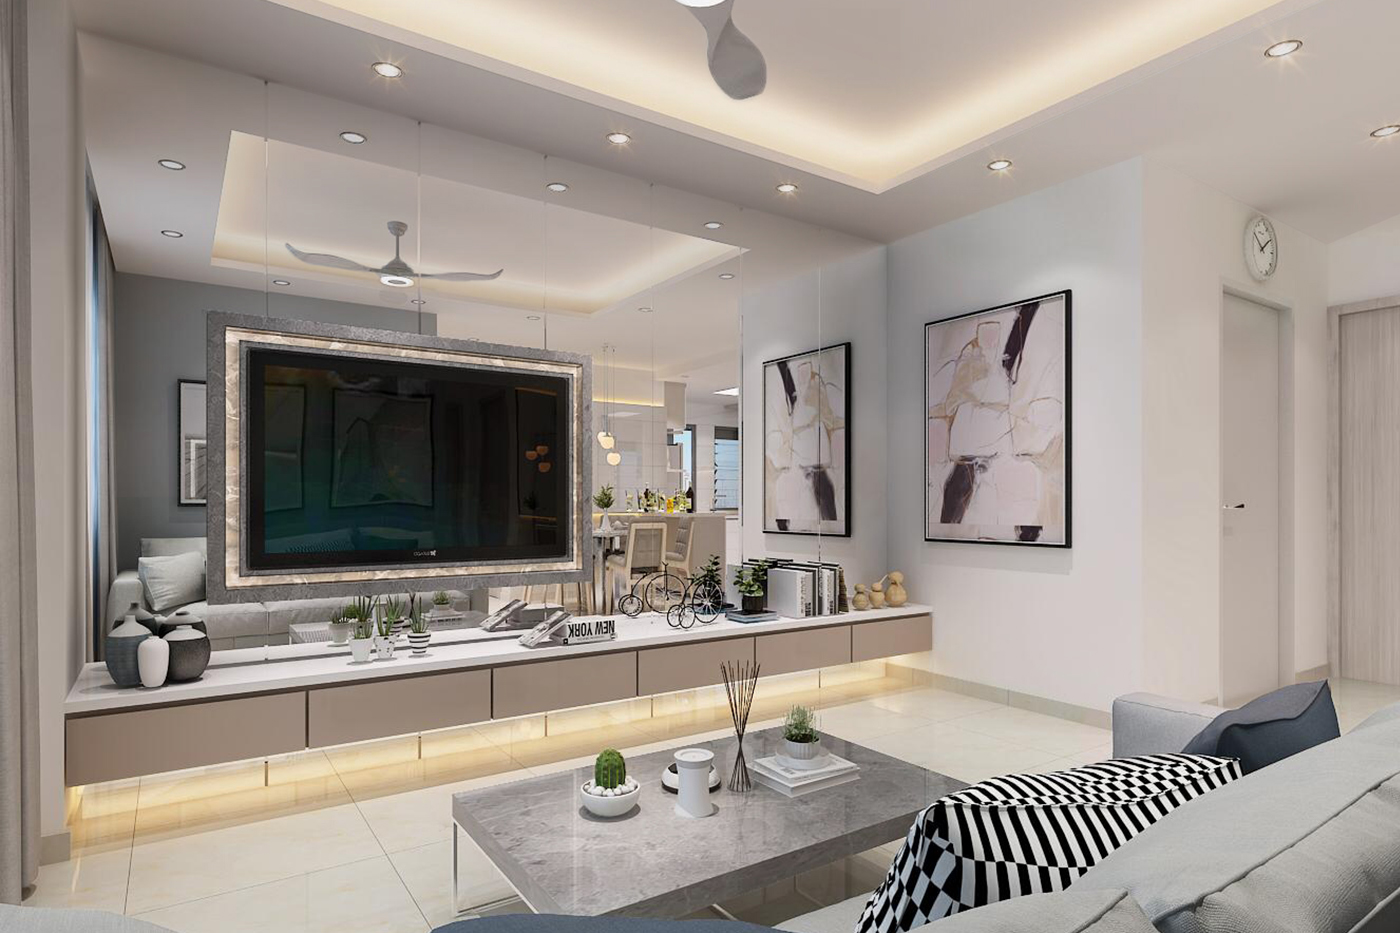 How you can Renovate Without Overspending